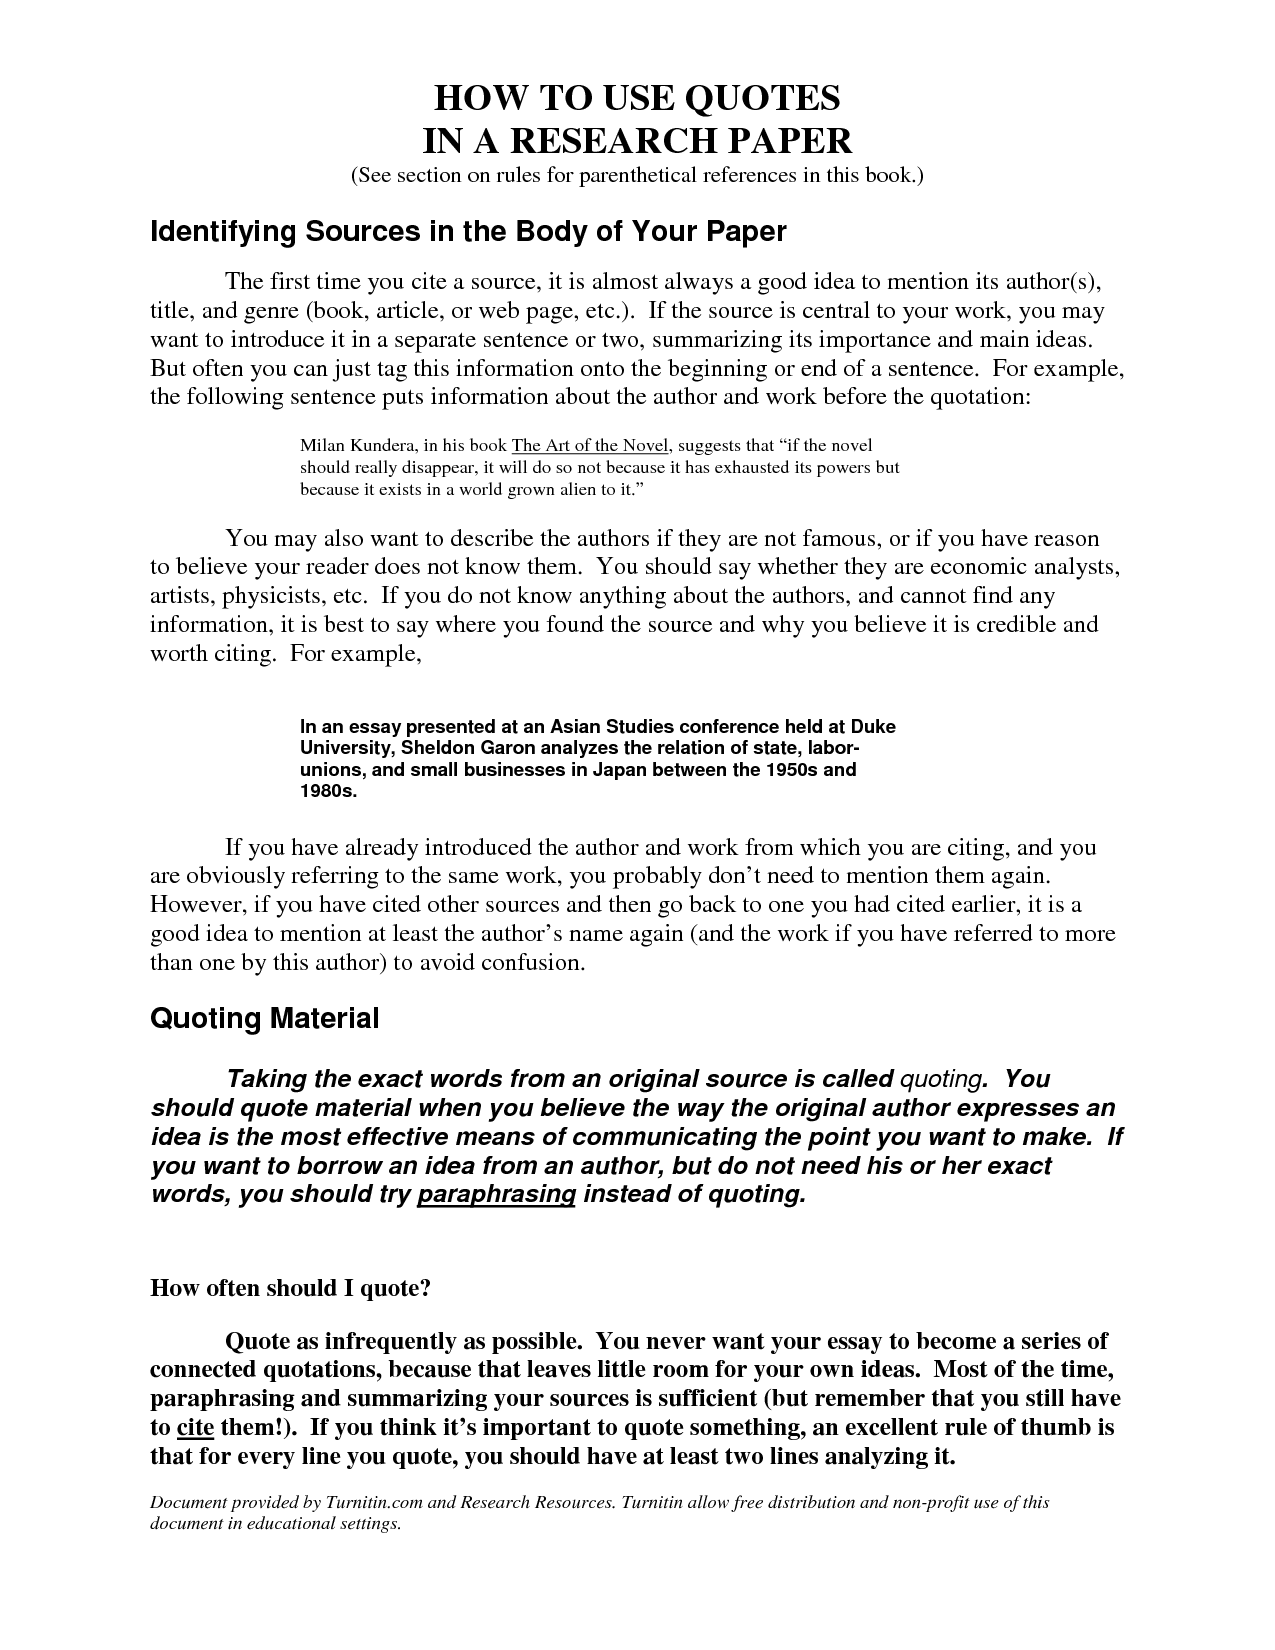 003 Best Solutions Of Writing Quotes In Essays Marvelous Embedding On Quotestopics Essay Example Quoting Frightening An A Website Harvard Dialogue Book Mla Full